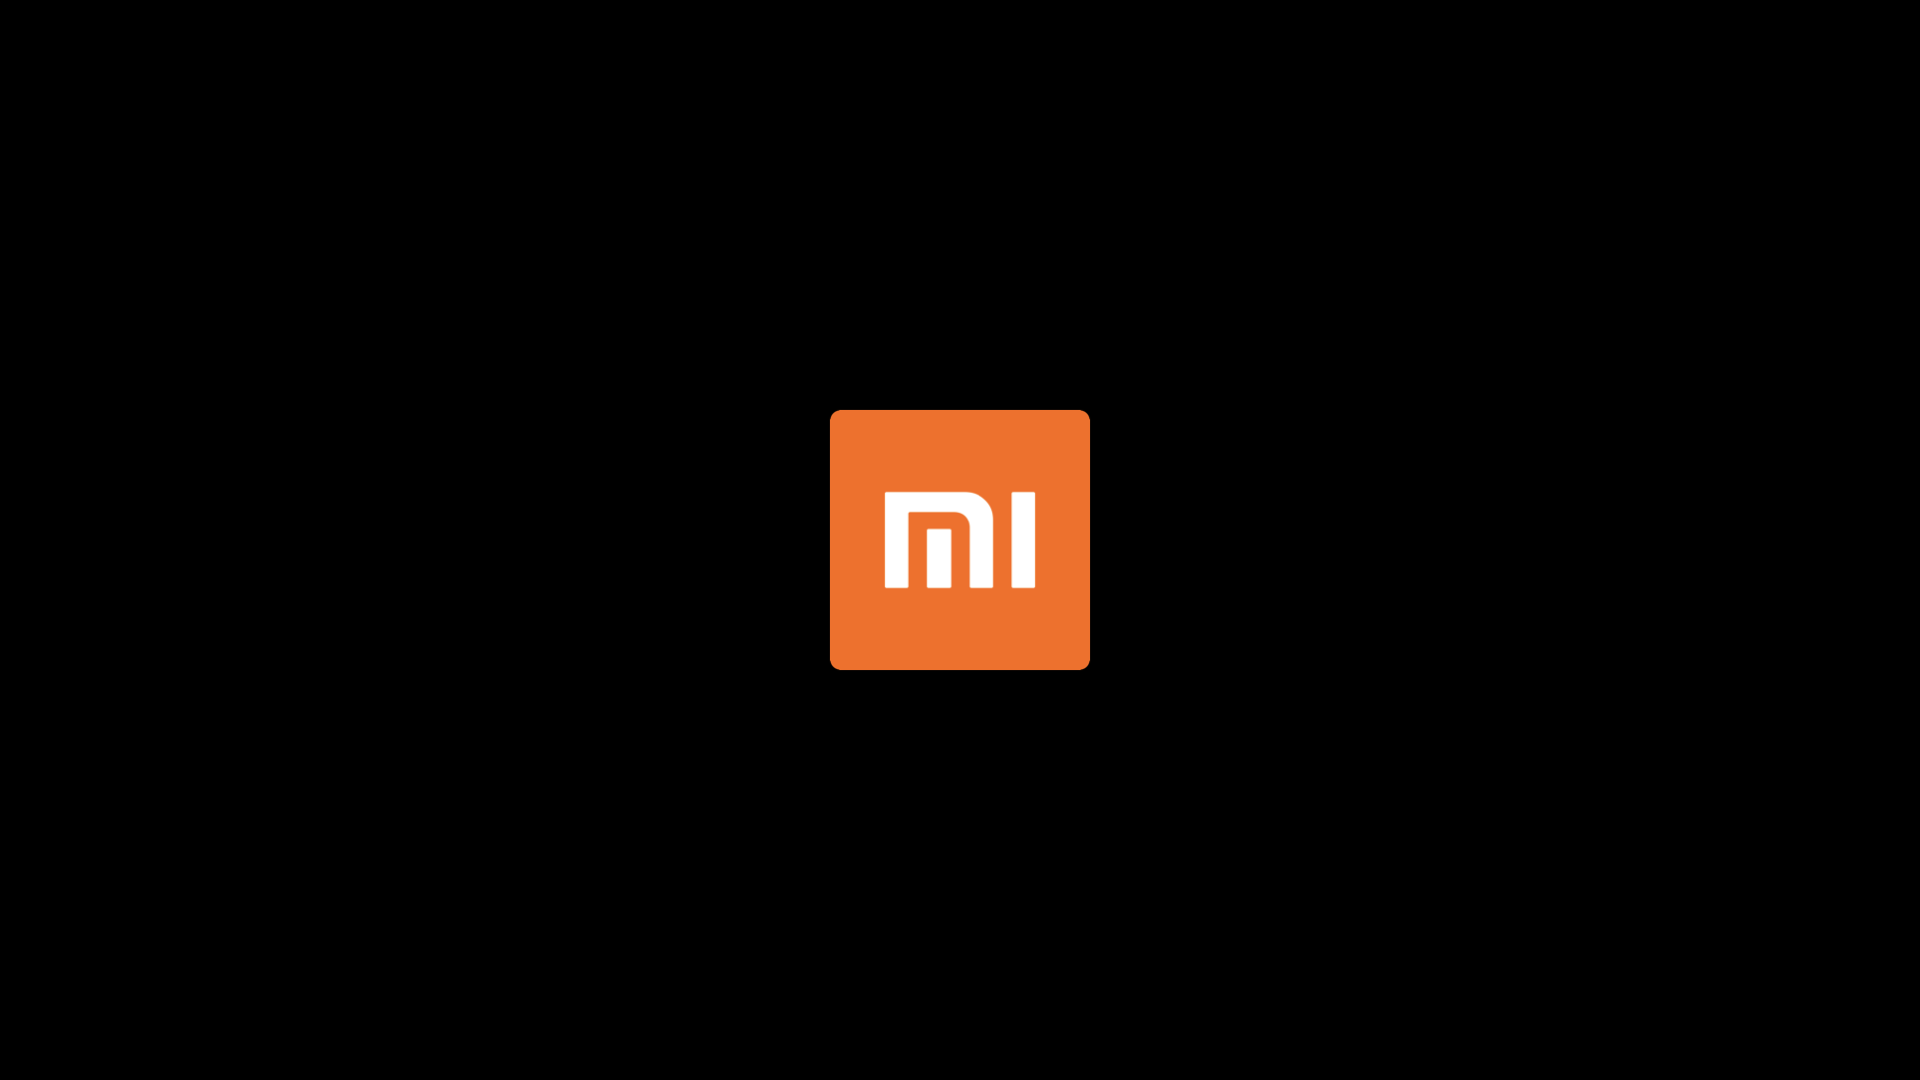 Xiaomi Wallpaper With Logo: The Live Stream Updates Of Redmi 6, Redmi 6A And Redmi 6